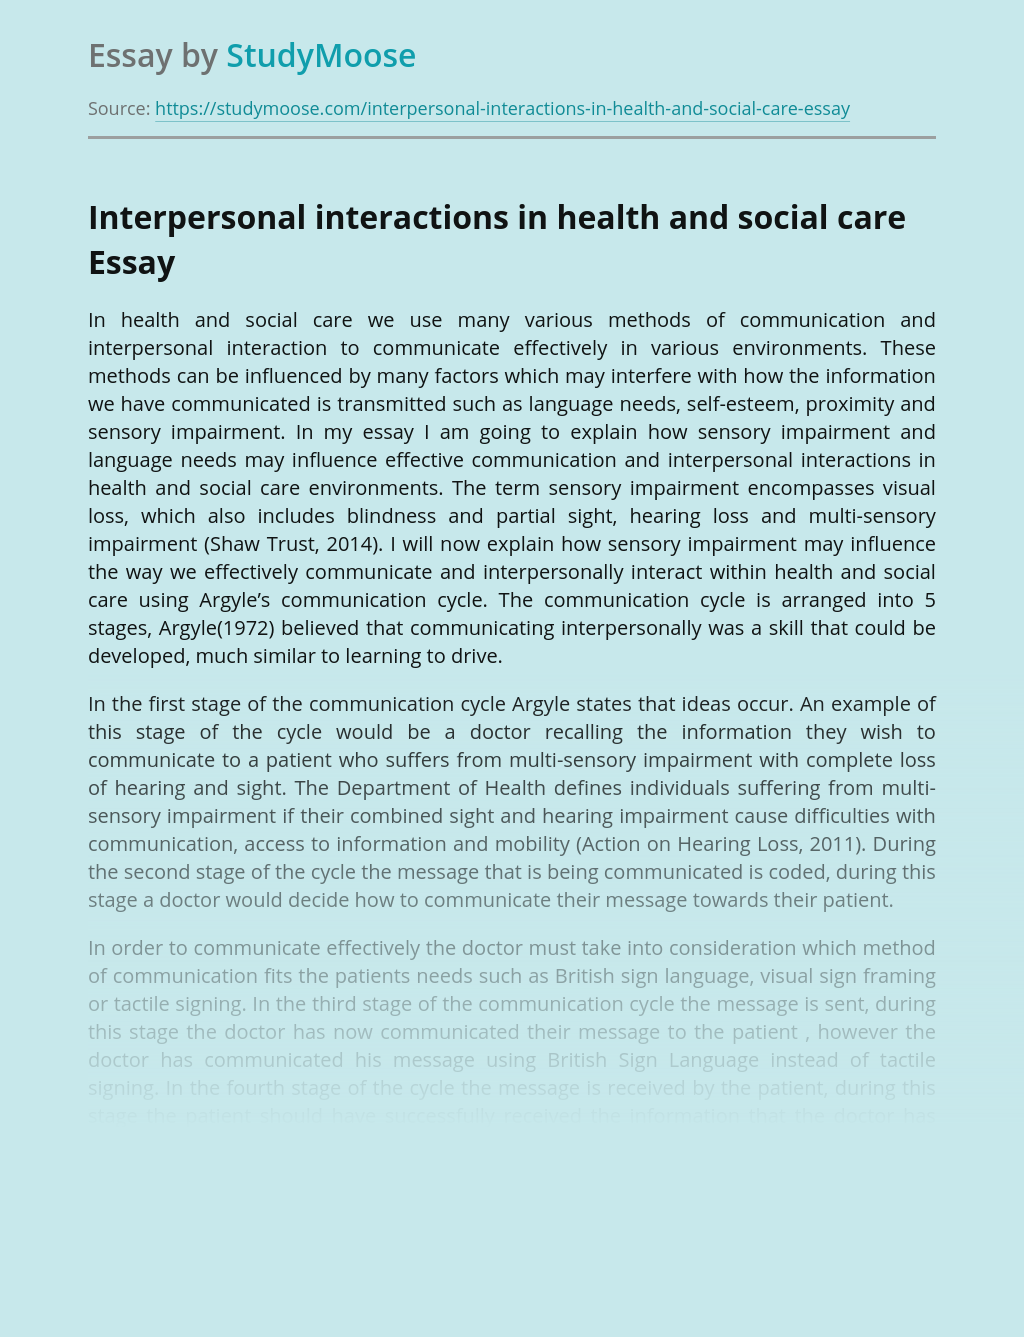 Interpersonal interactions in health and social care